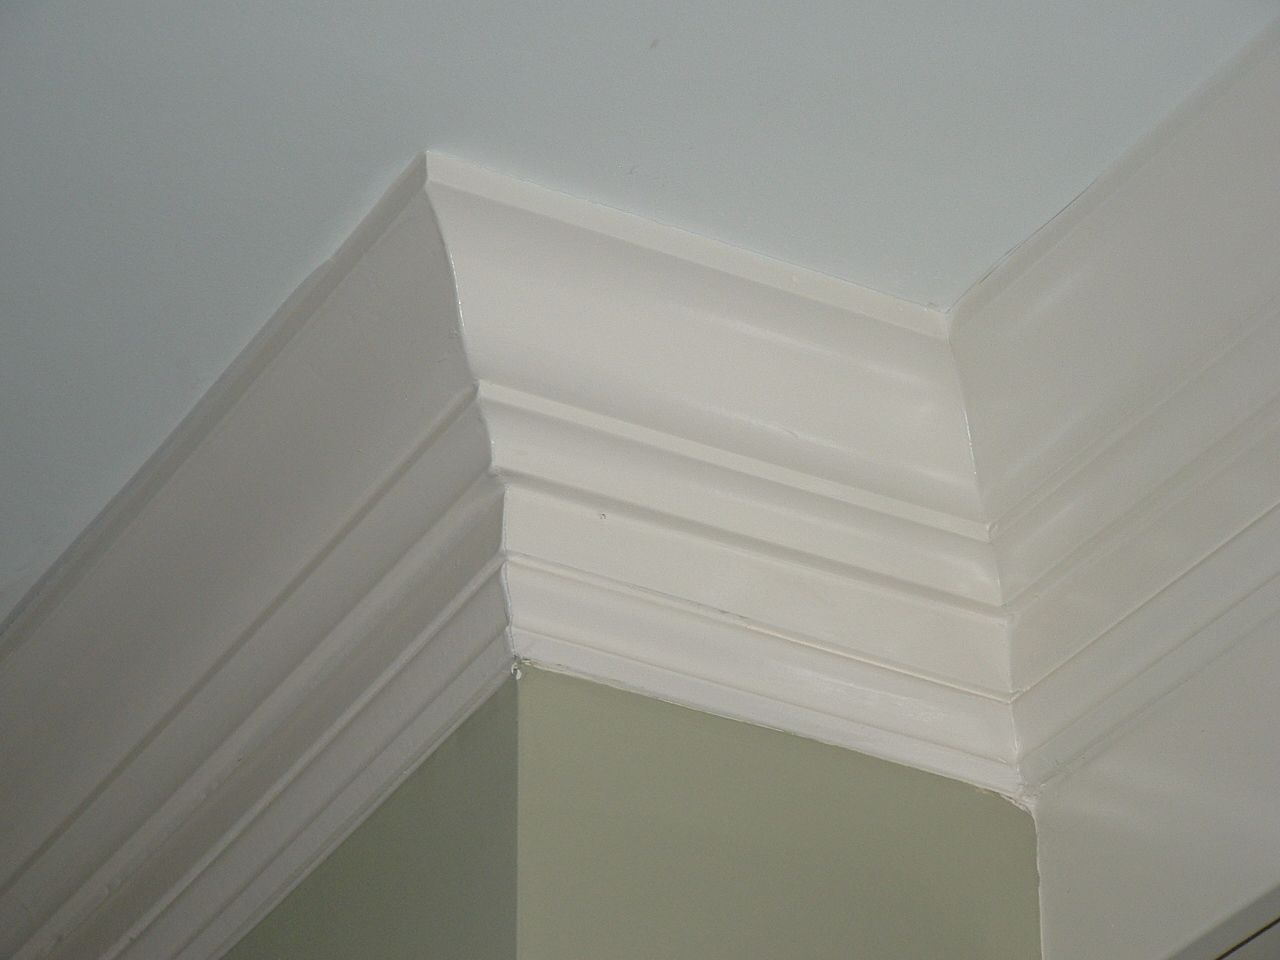 How to cut base molding around wall vent - Here You See Two Piece Crown Mouldings Consisting Of Four And Three Quarter Mdf Crown And Six Inch Mdf Speed Base Mouldings